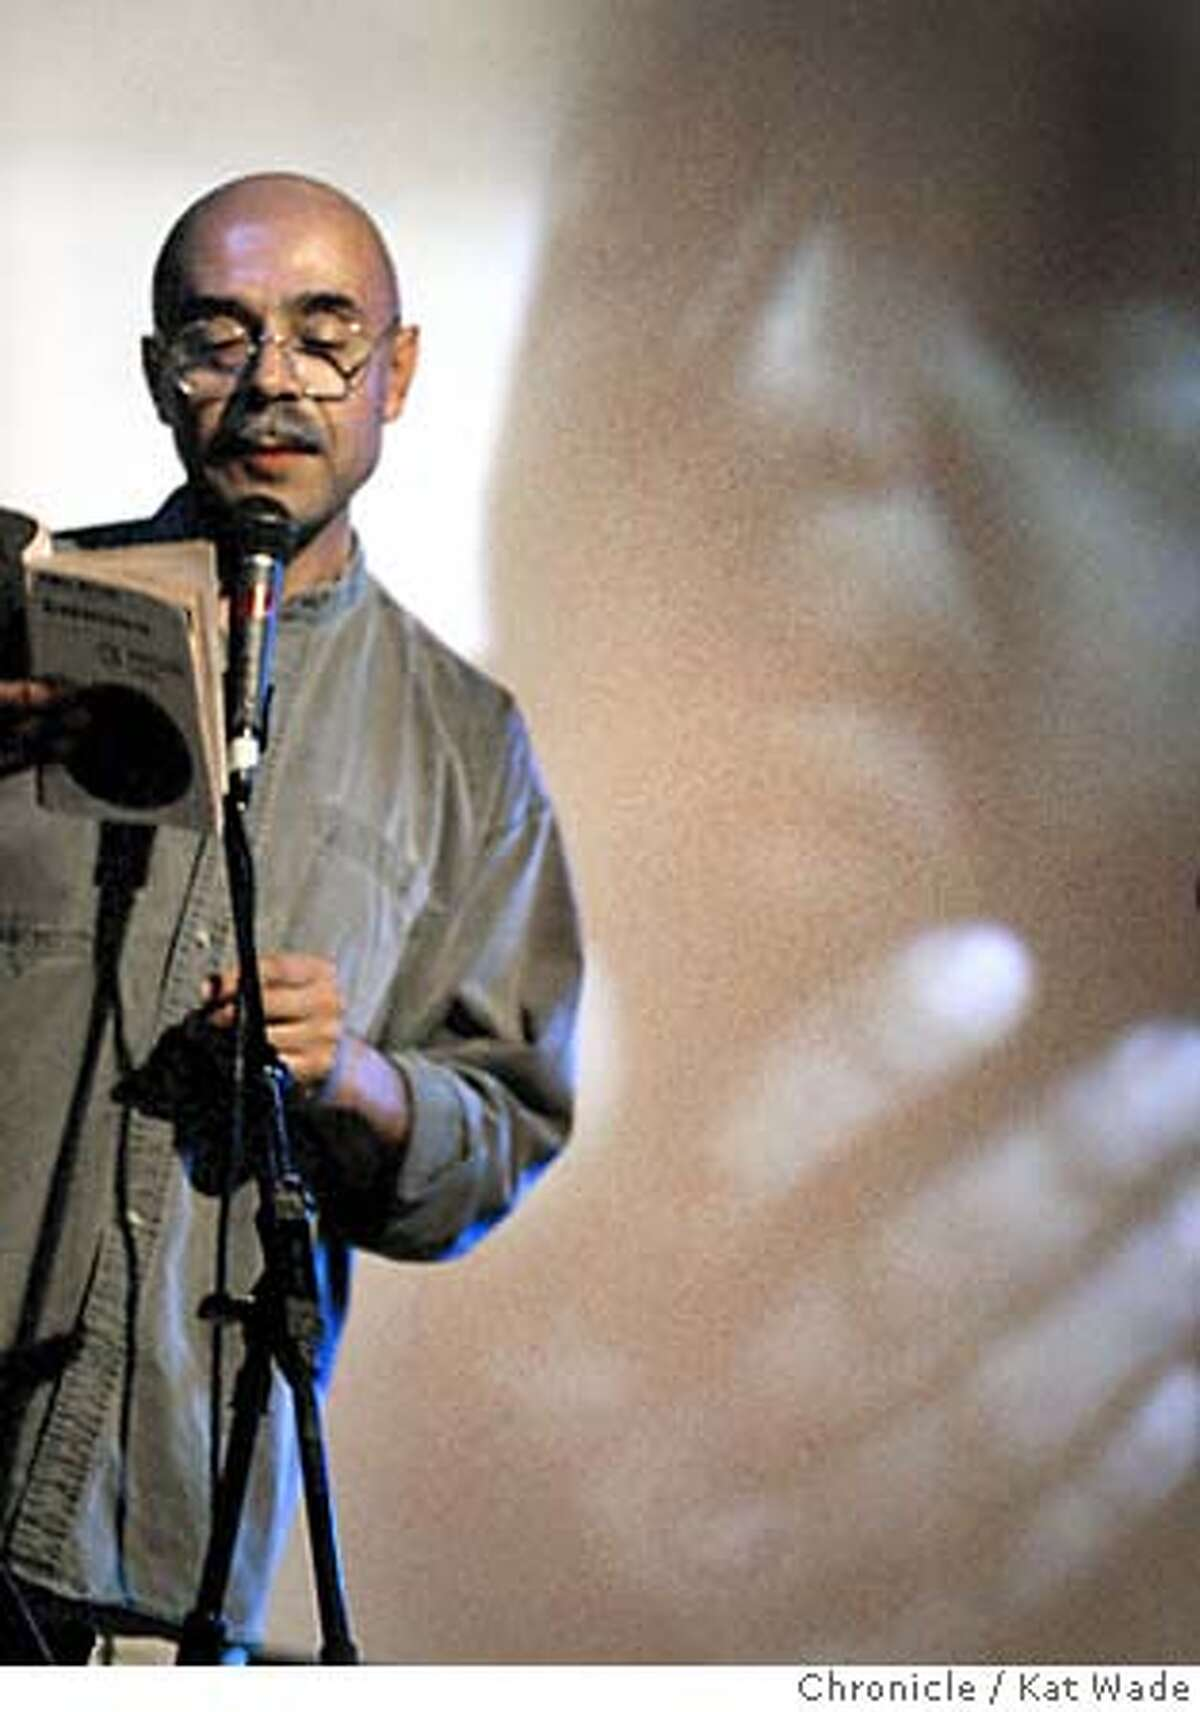 As photos of the poet Pablo Neruda flash on the screen behind, Ivan Herrera reads his poems aloud during the all day celebration of Pablo Neruda's centennial birthday with poetry readings and an artistic tribute to the poet born on July 12, 1904 at La Pe�a Cultural Center in Berkeley on 7/11/04. The Chronicle/ Kat Wade